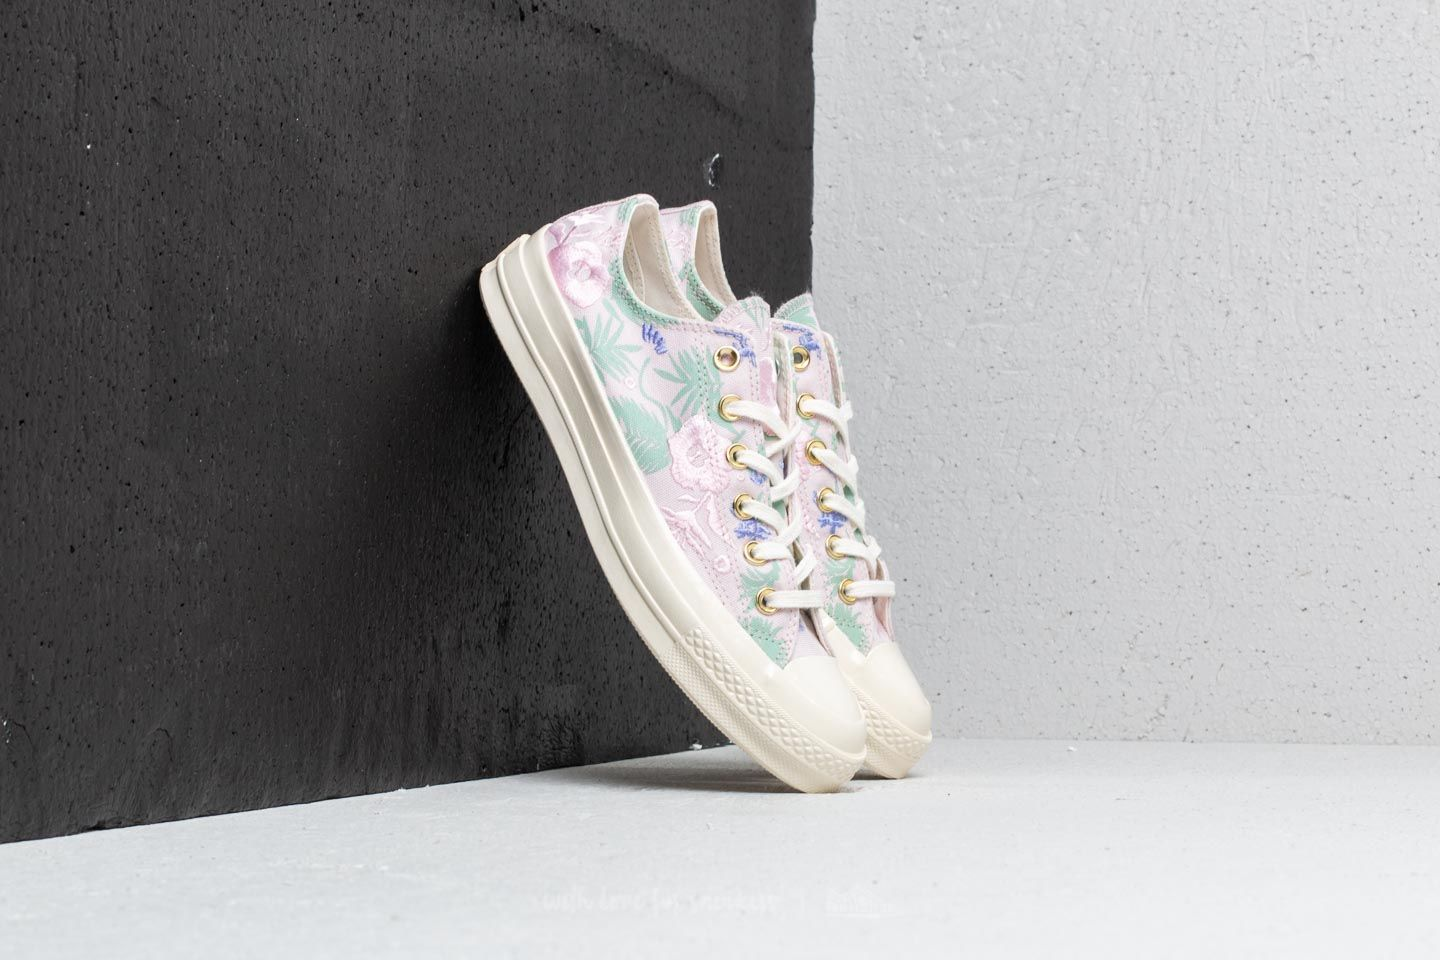 Chaussures et baskets femme Converse Chuck Taylor All Star 70 Ox Barely Rose/ Jaded/ Egret